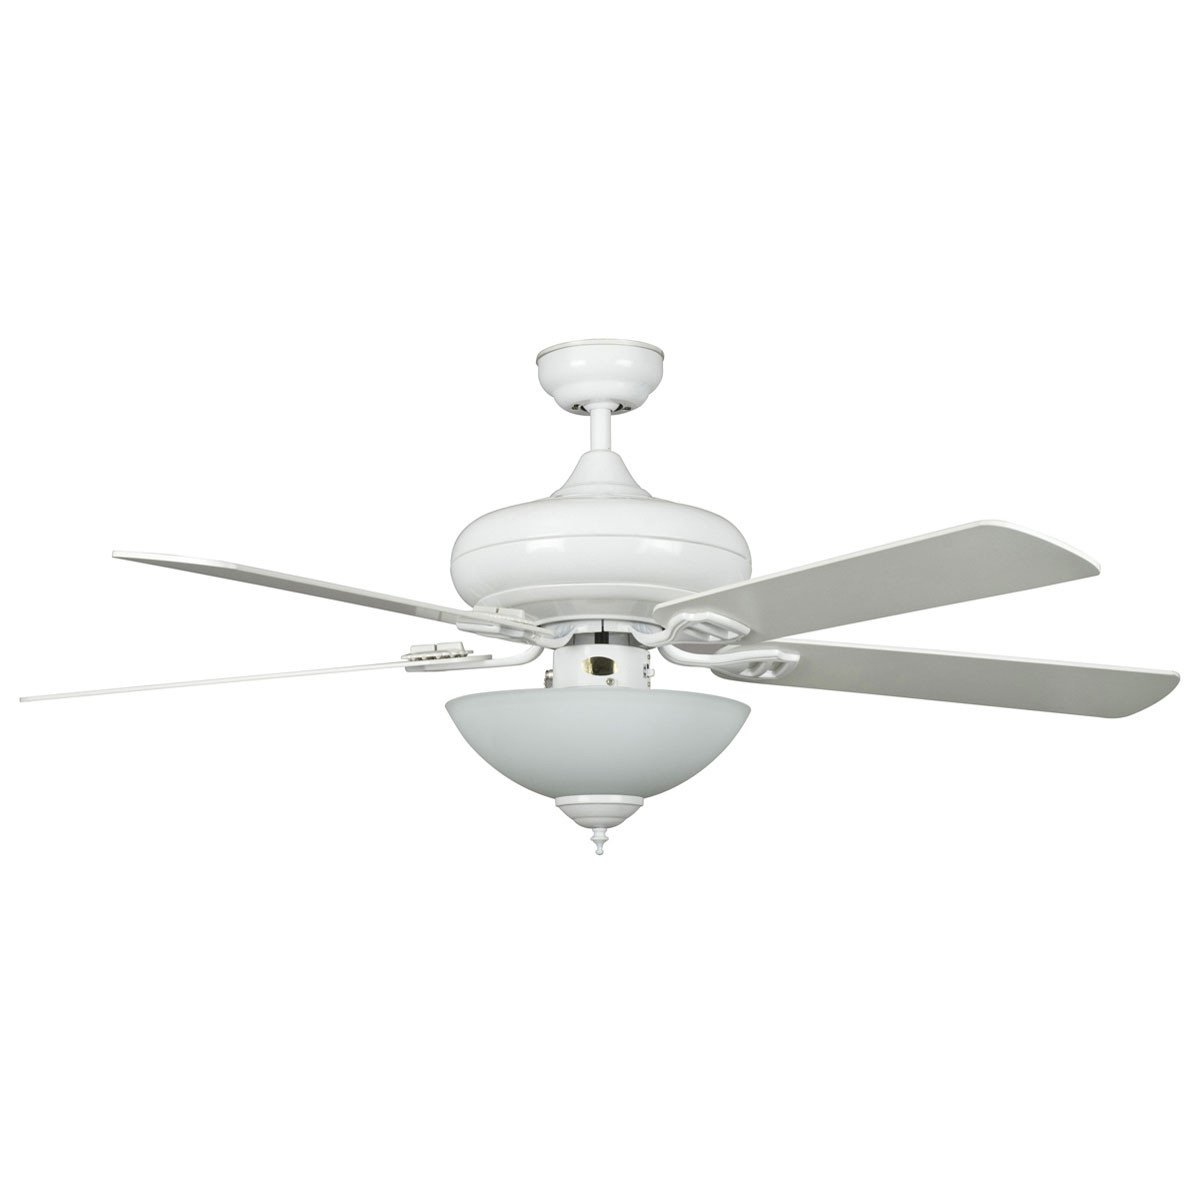 "Concord Fans 52"" Valore Modern White Quick Connect Ceiling Fan with Light"